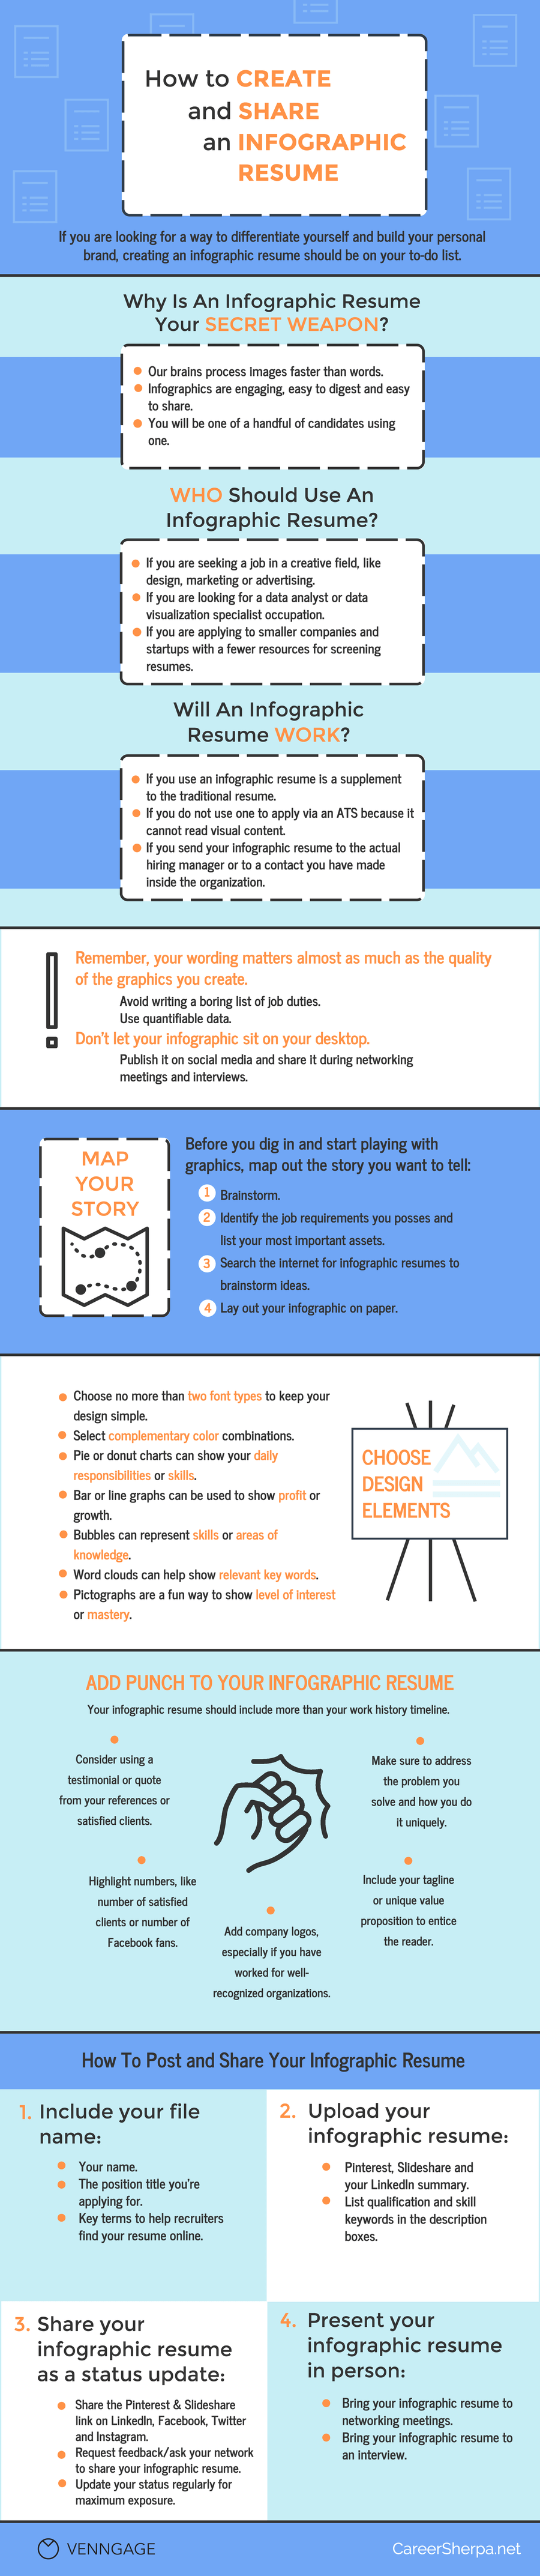 Guidelines For A Resume The Right Way To Use Your Infographic Resume  Infographic Resume